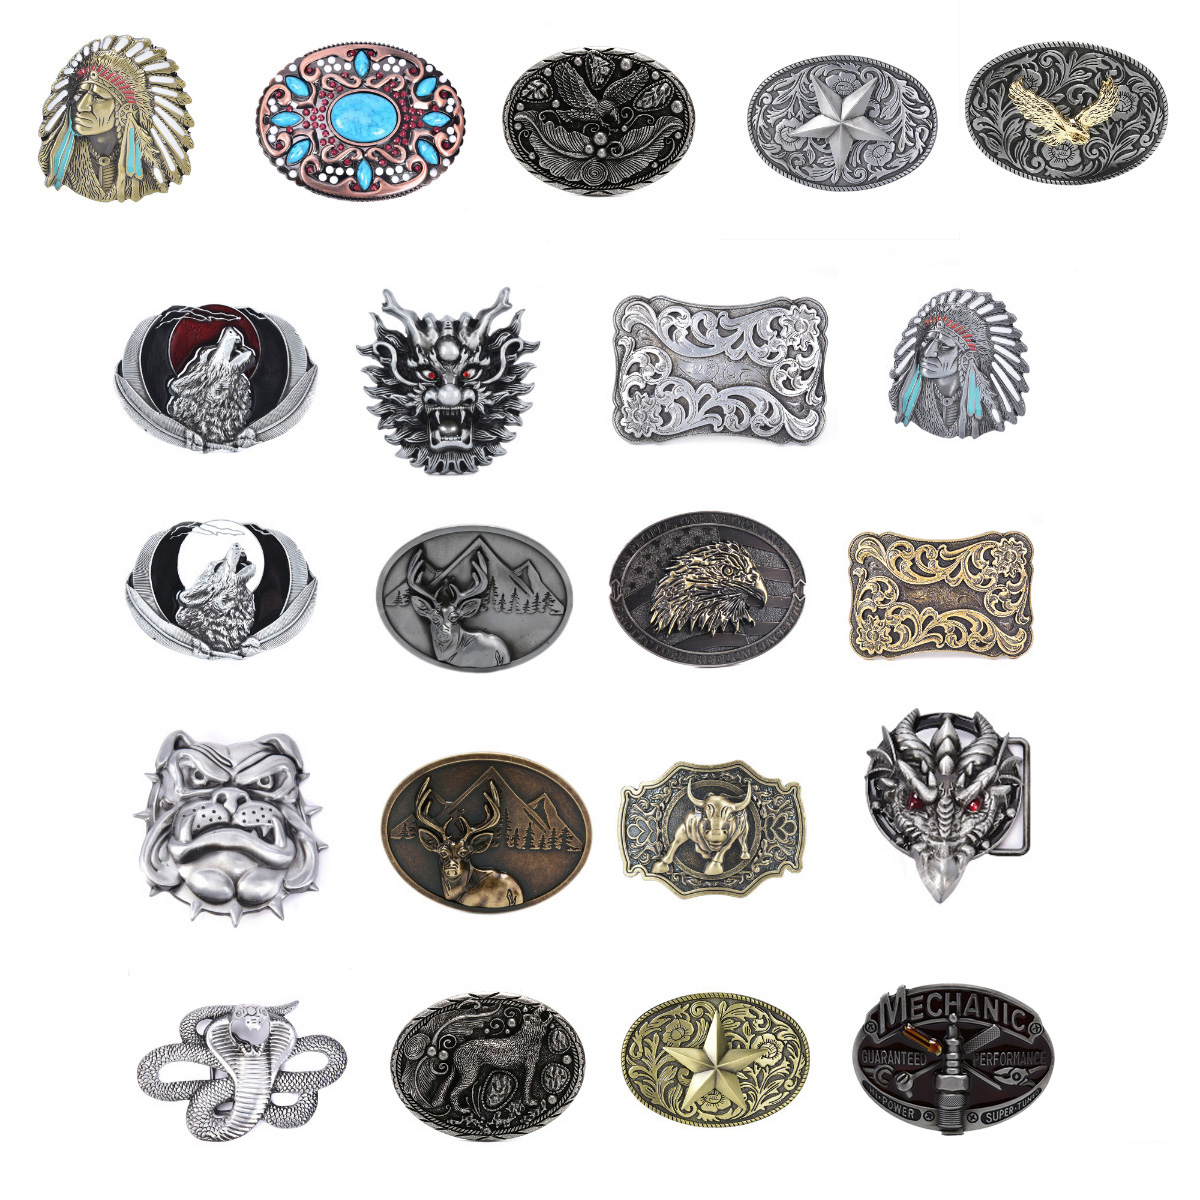 Mens' Belt Buckle Belt Buckle For Men Carpenter Mechanic Cowboy And Cowgirl Metal Tool Western Buckles Marvel